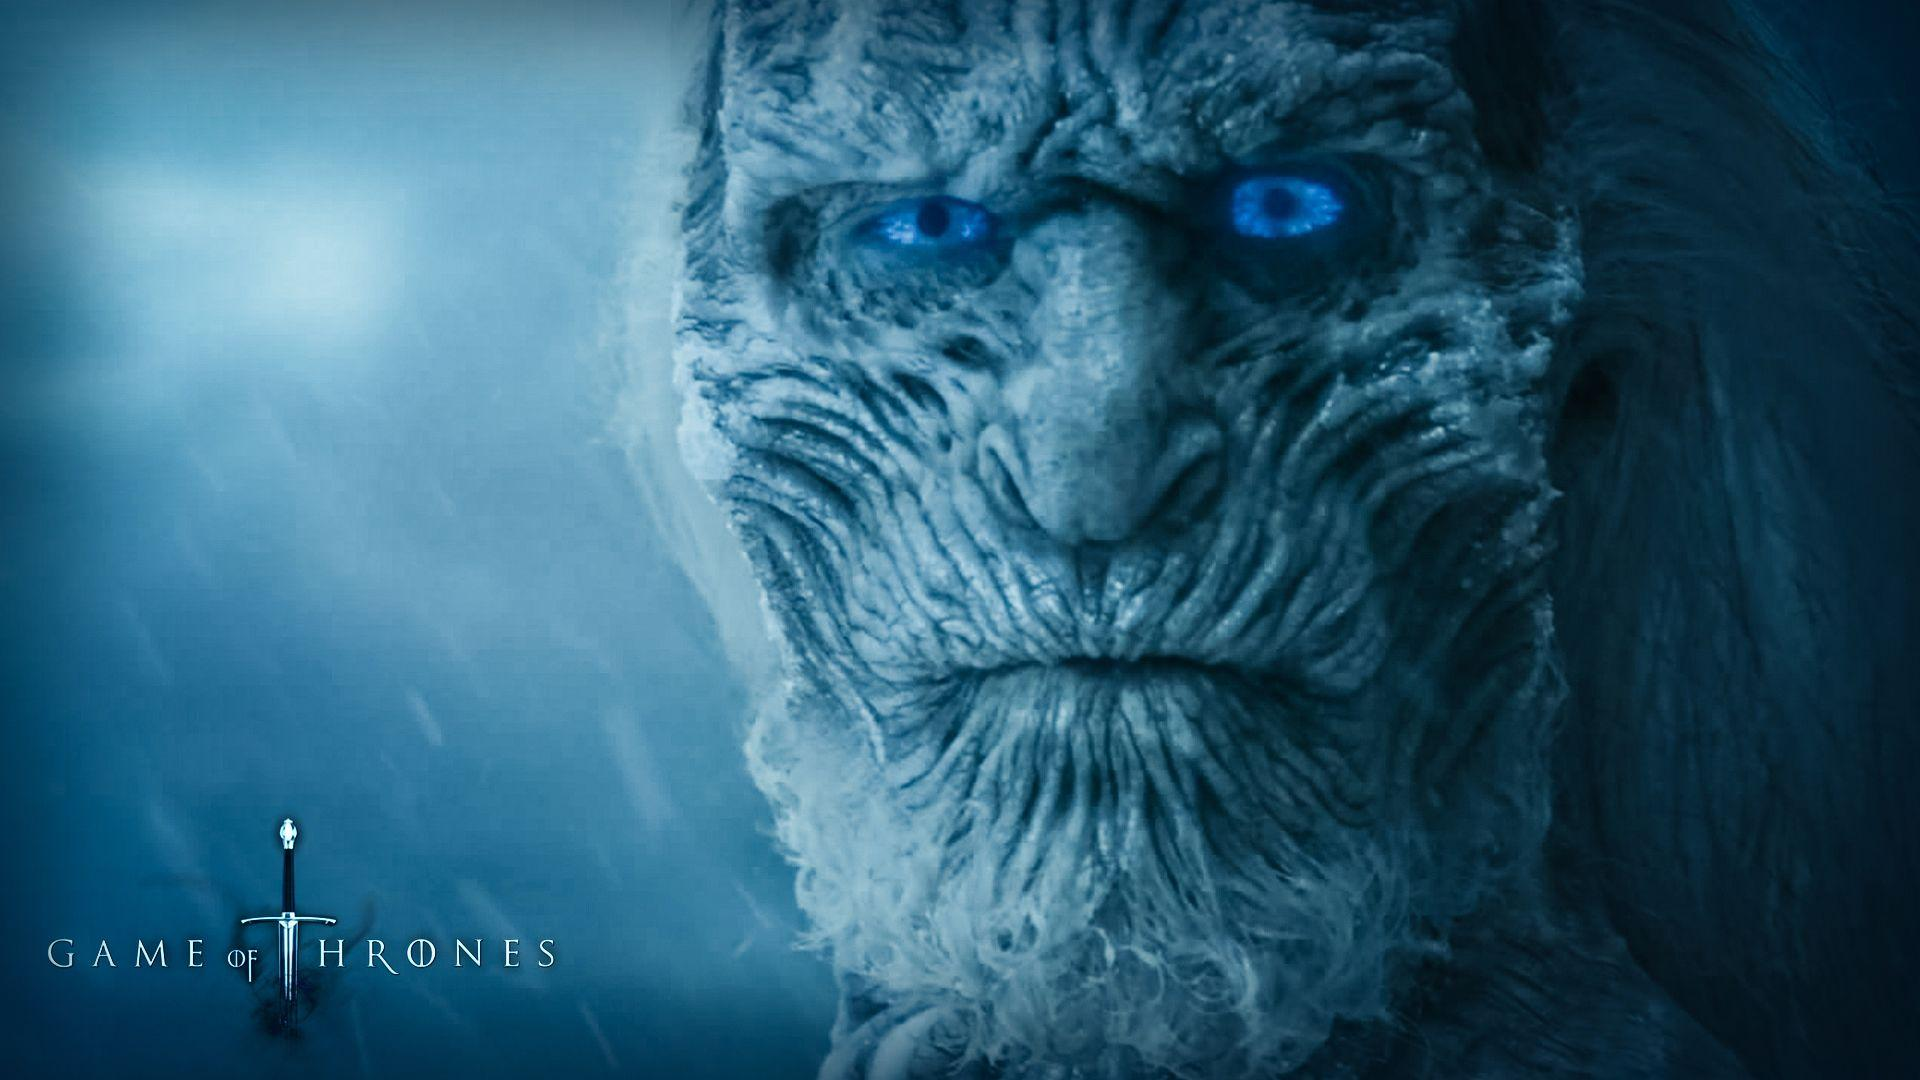 Game of Thrones image The White Walkers HD wallpapers and backgrounds